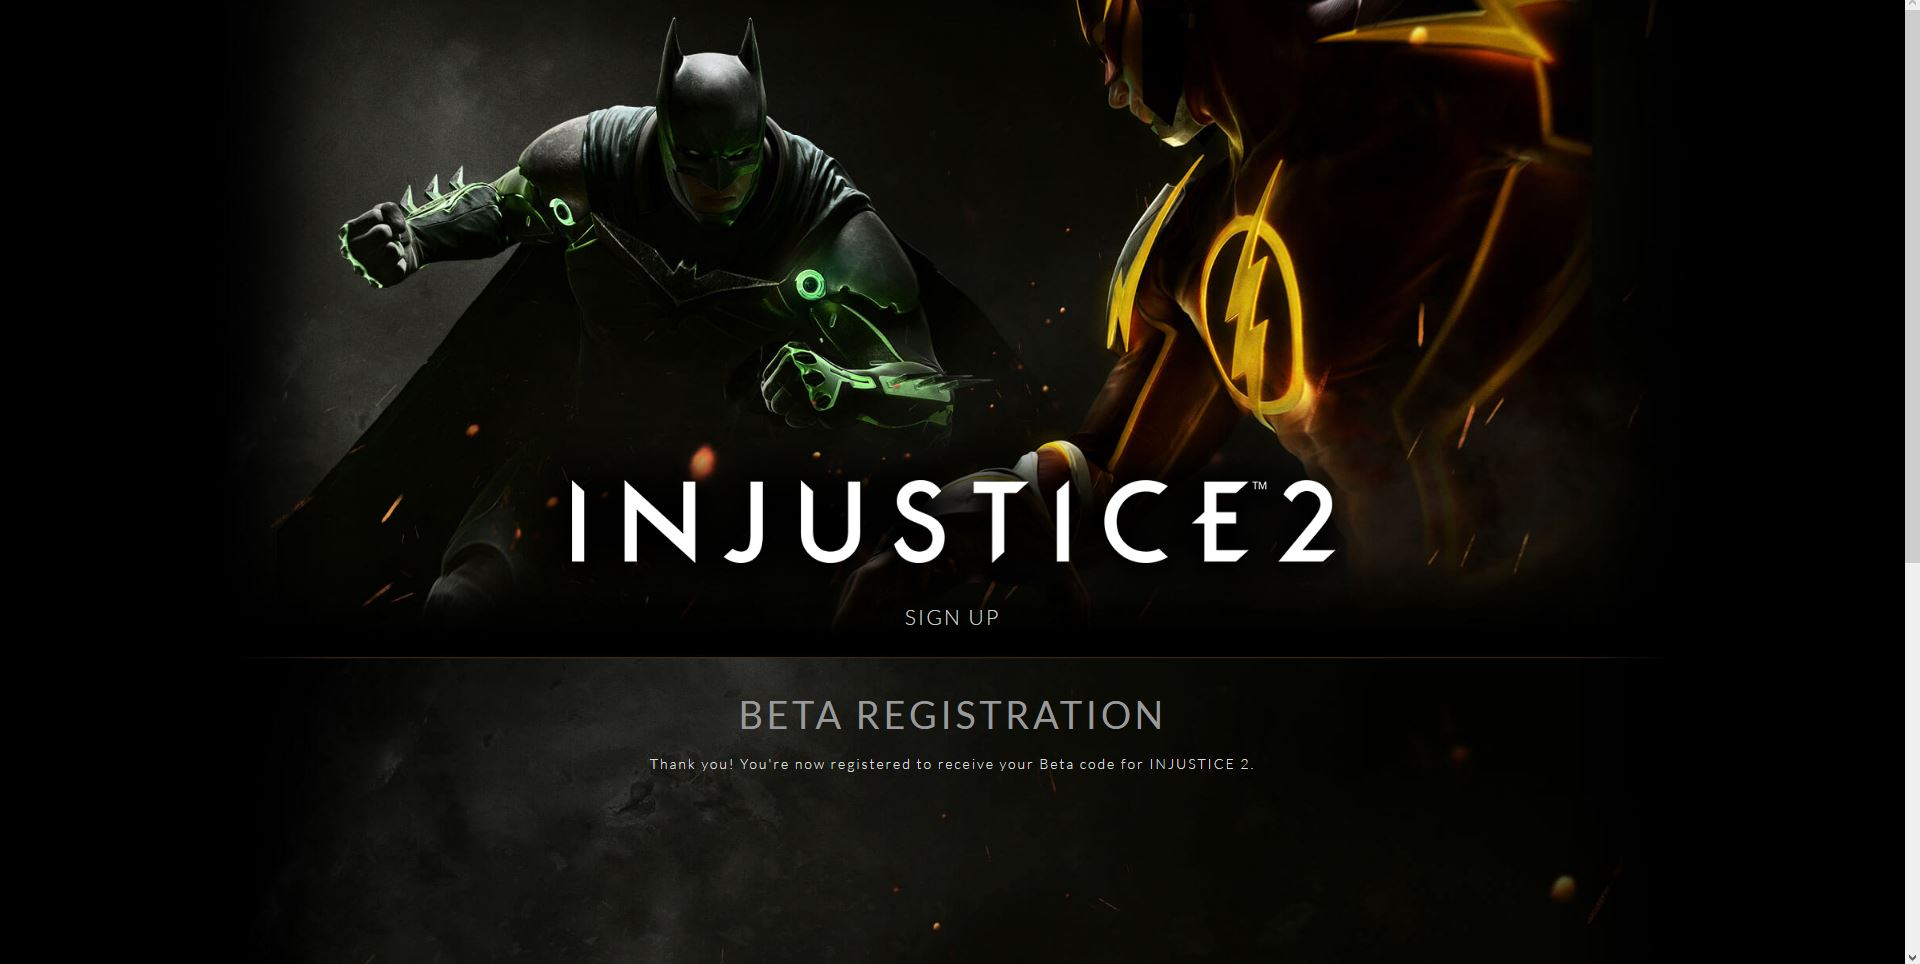 Injustice 2 Beta Sign Up Live